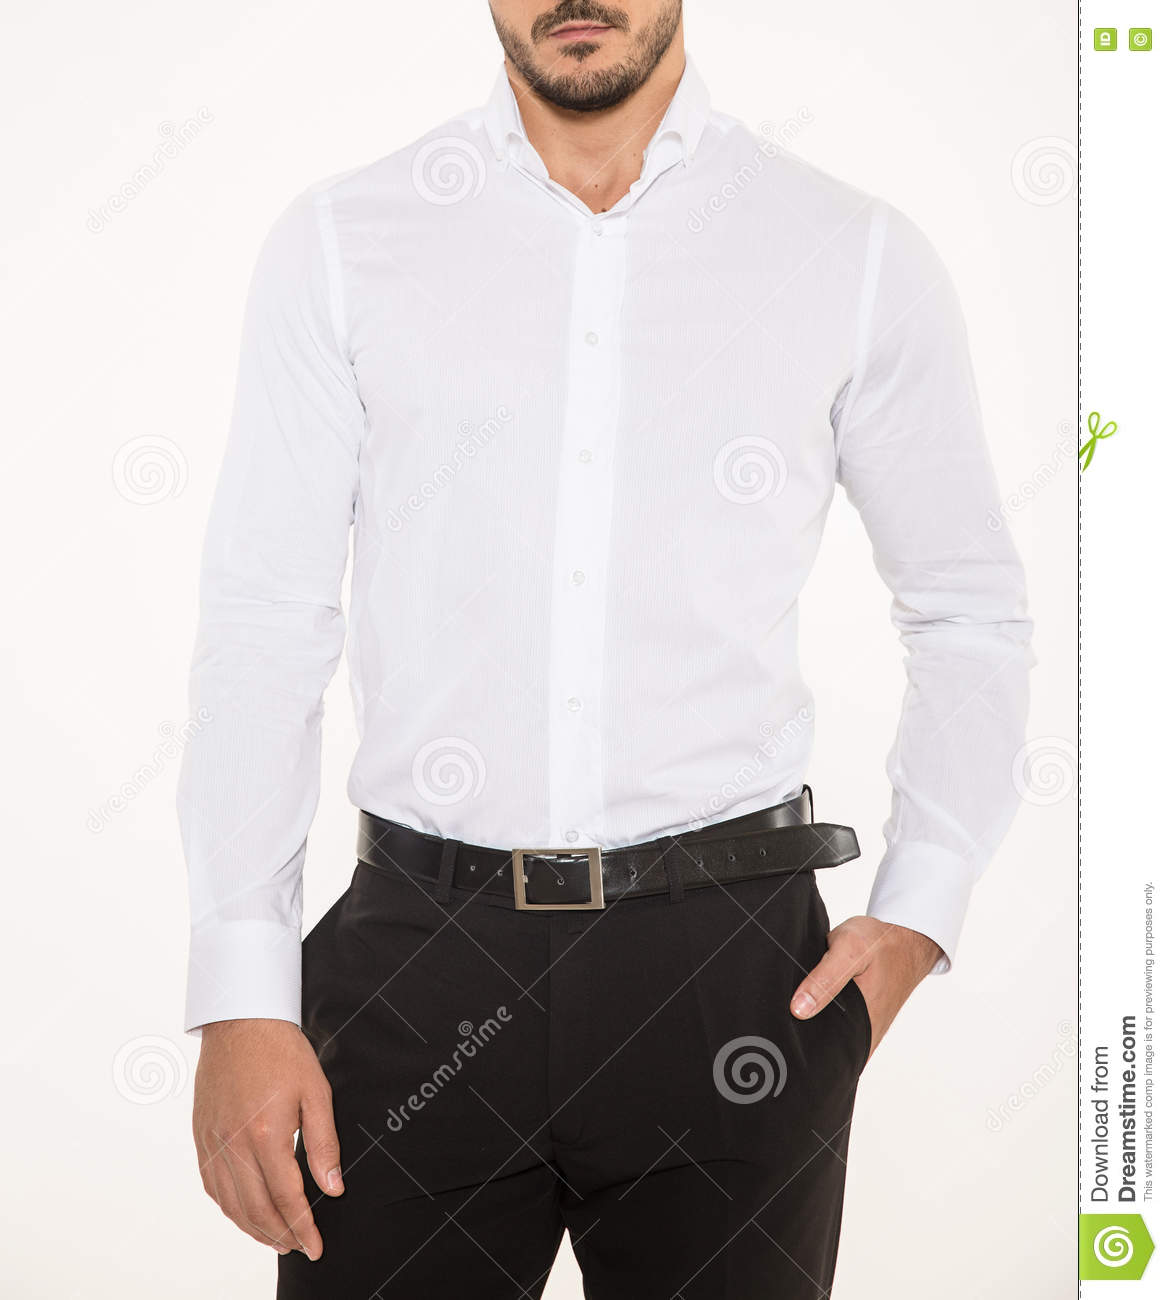 Male Model With Elegant Black Pants, Belt And White Shirt Stock ...